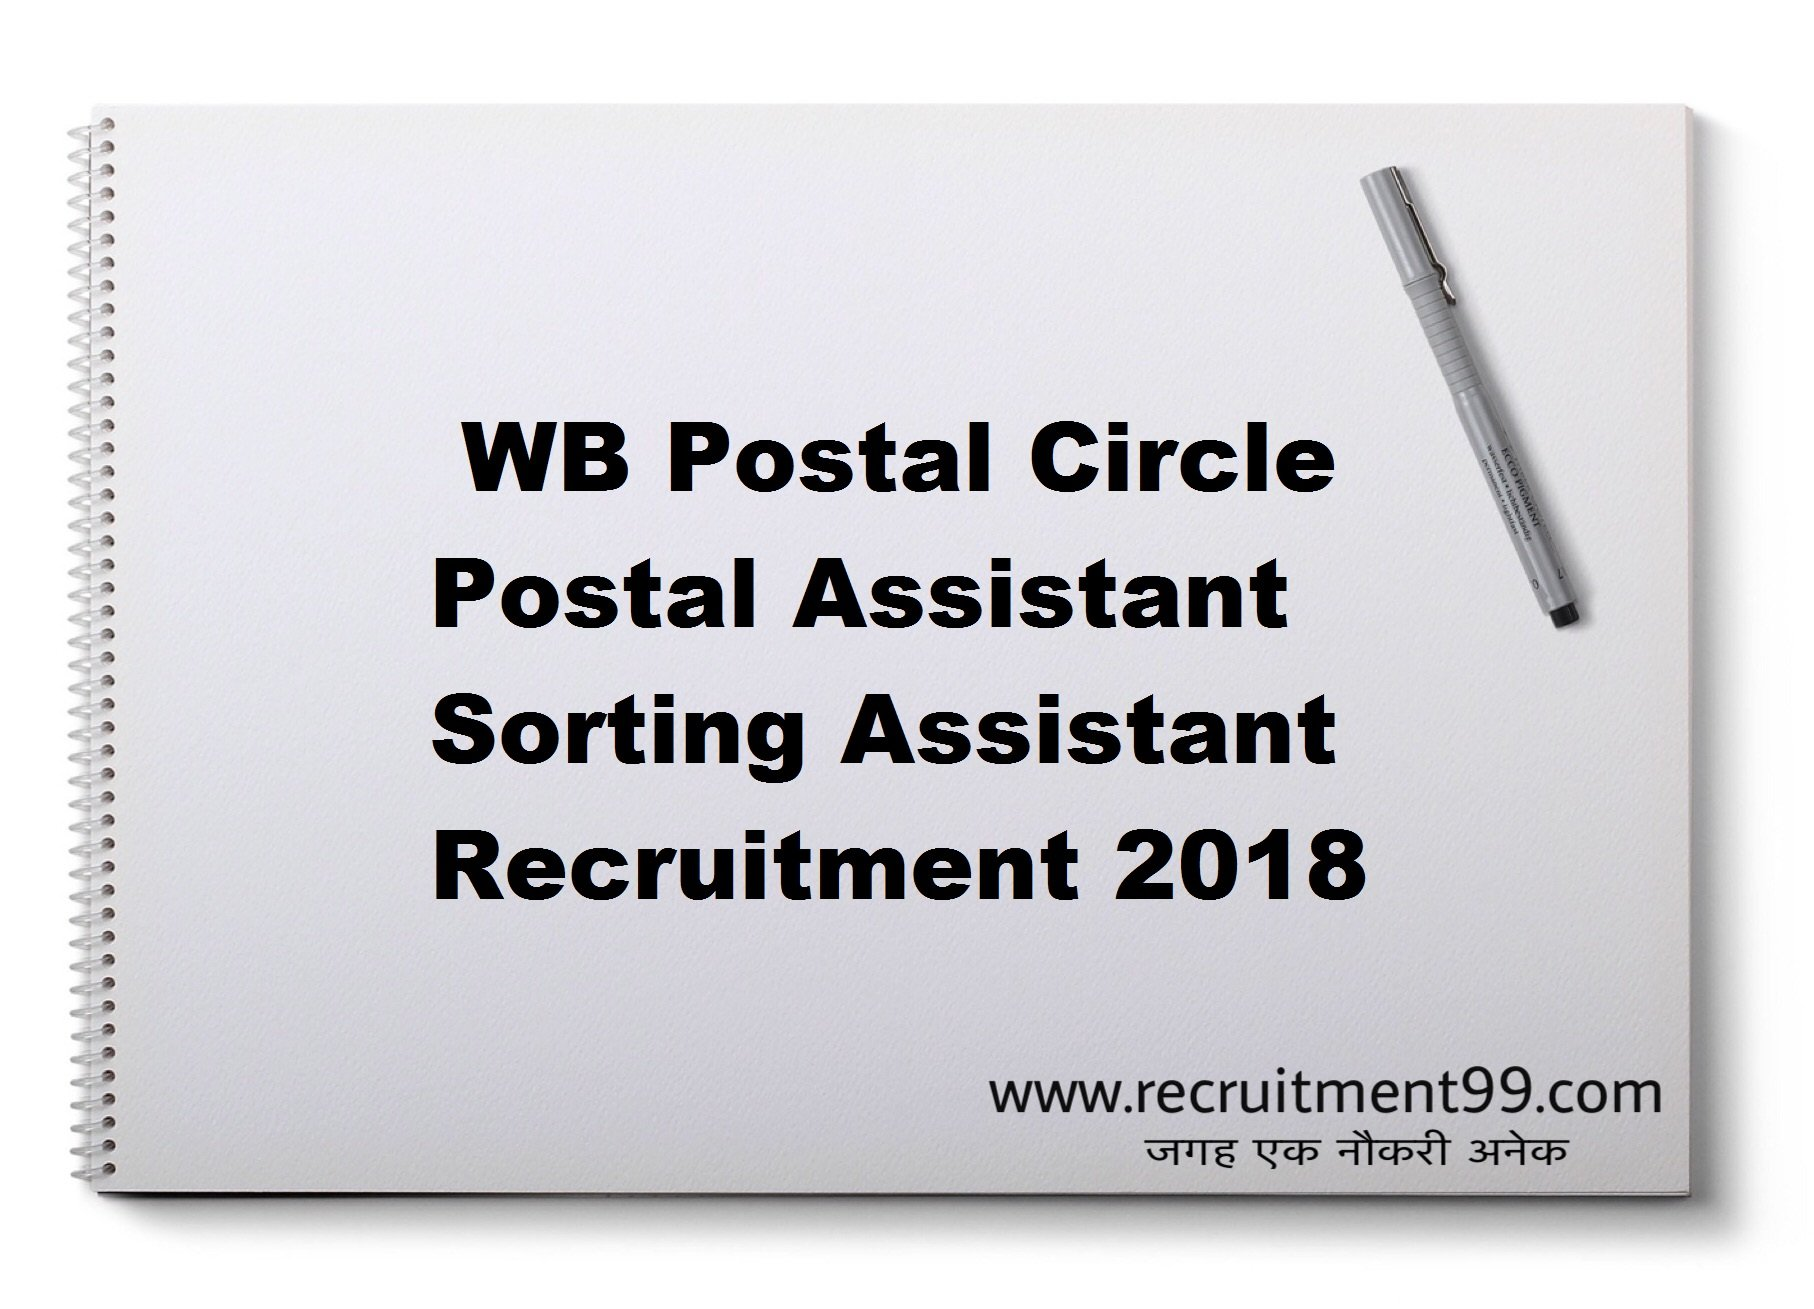 WB Postal Circle Postal Assistant Sorting Assistant Recruitment Admit Card Result 2018